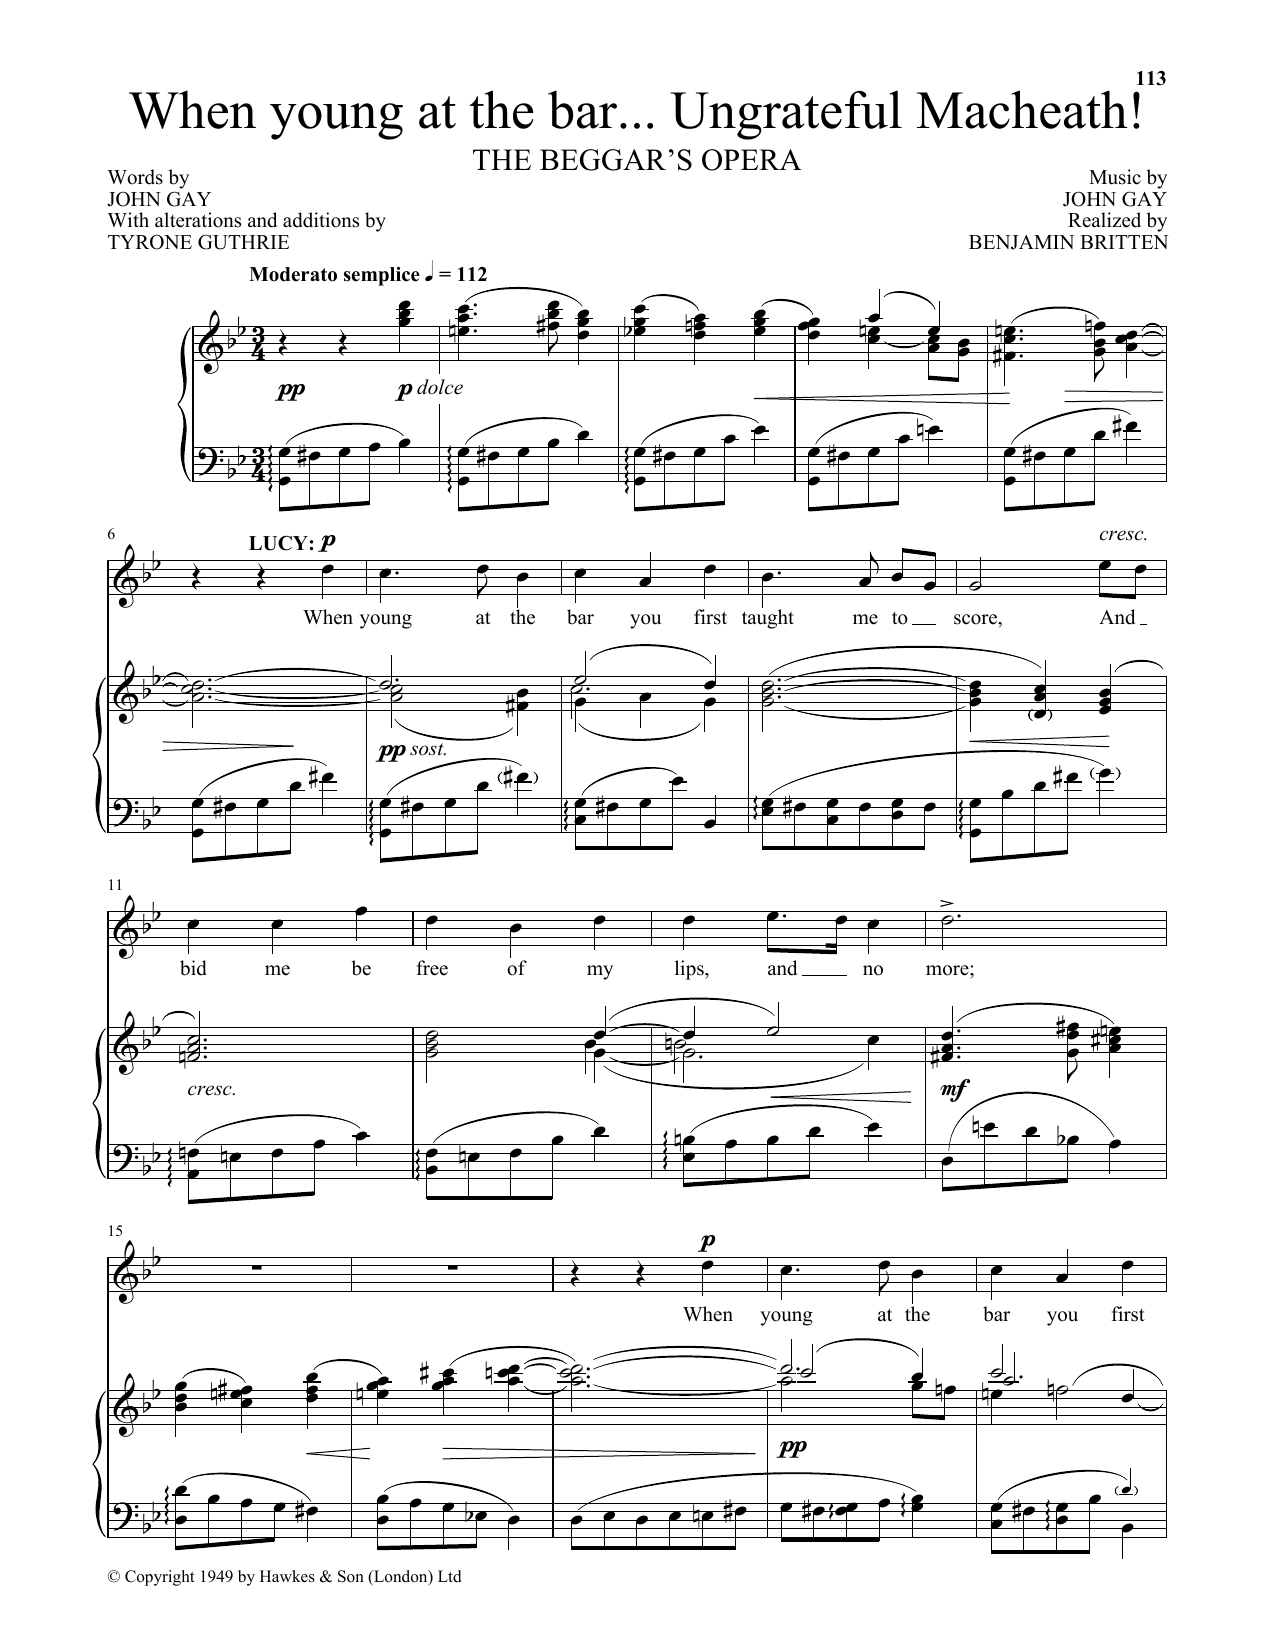 When young at the bar...Ungrateful Macheath! (from The Beggar's Opera) (Piano & Vocal)